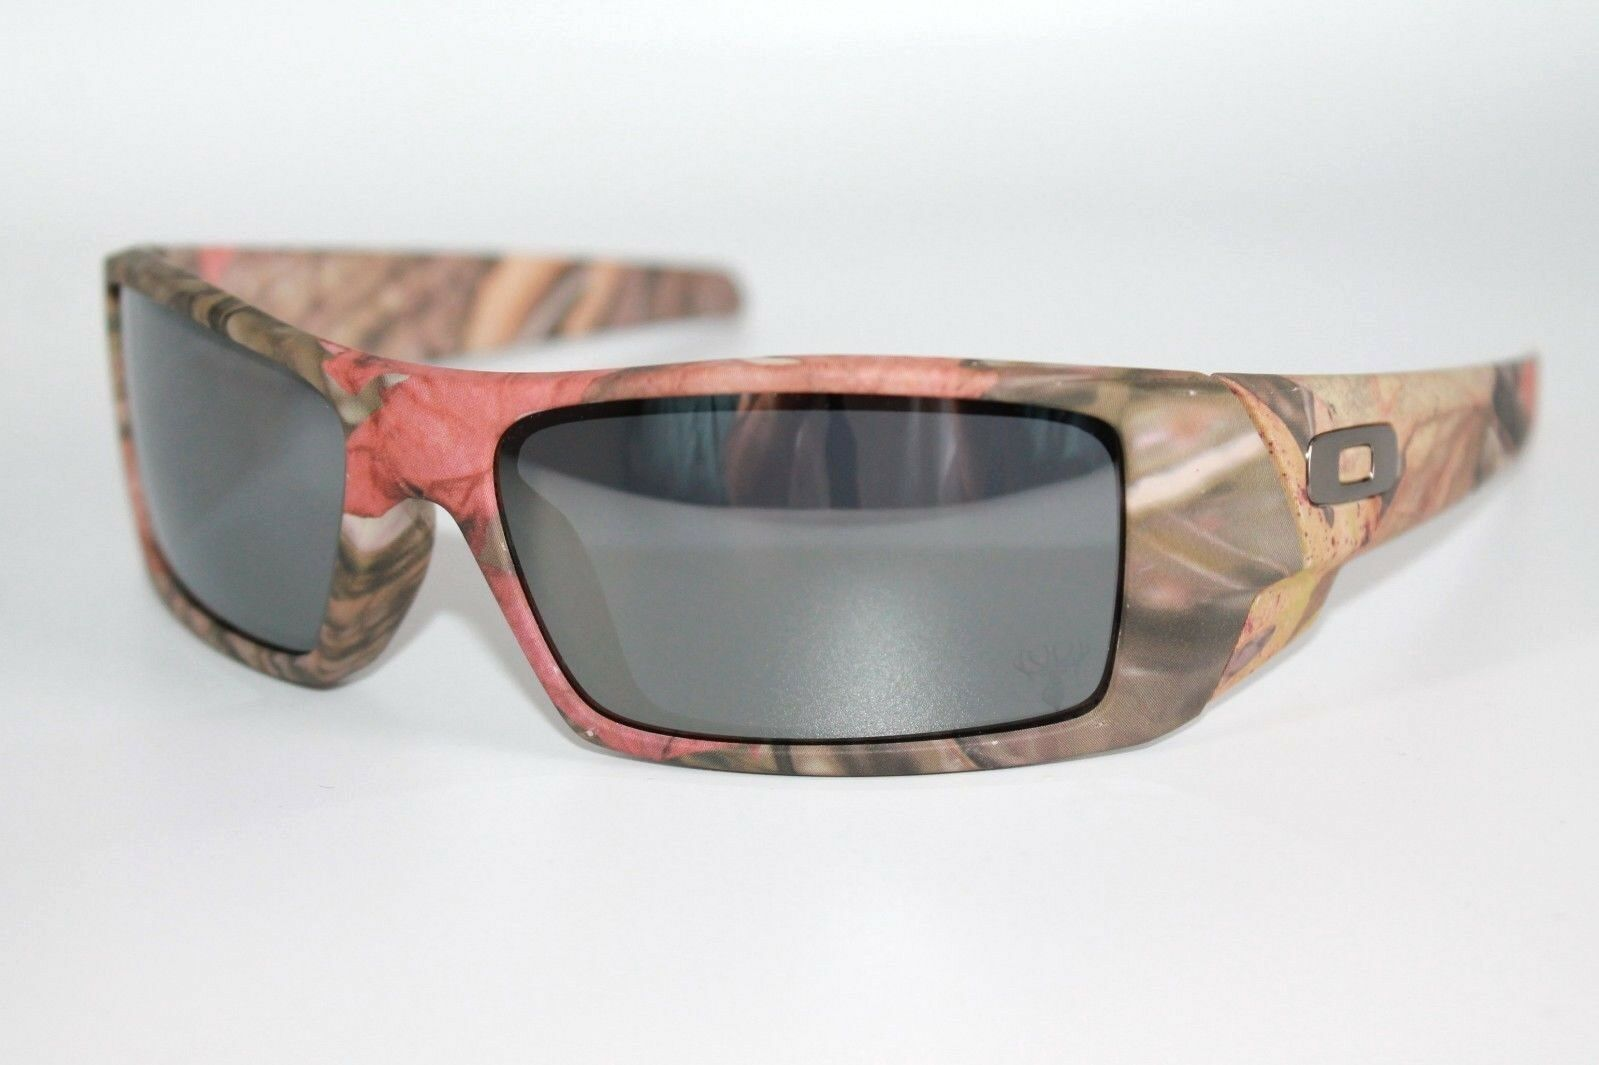 9a05c9b7be9 ... germany oakley sunglasses gascan 03 483 woodland camo frames black  iridium lens 60mm ebay 32607 2f1b4